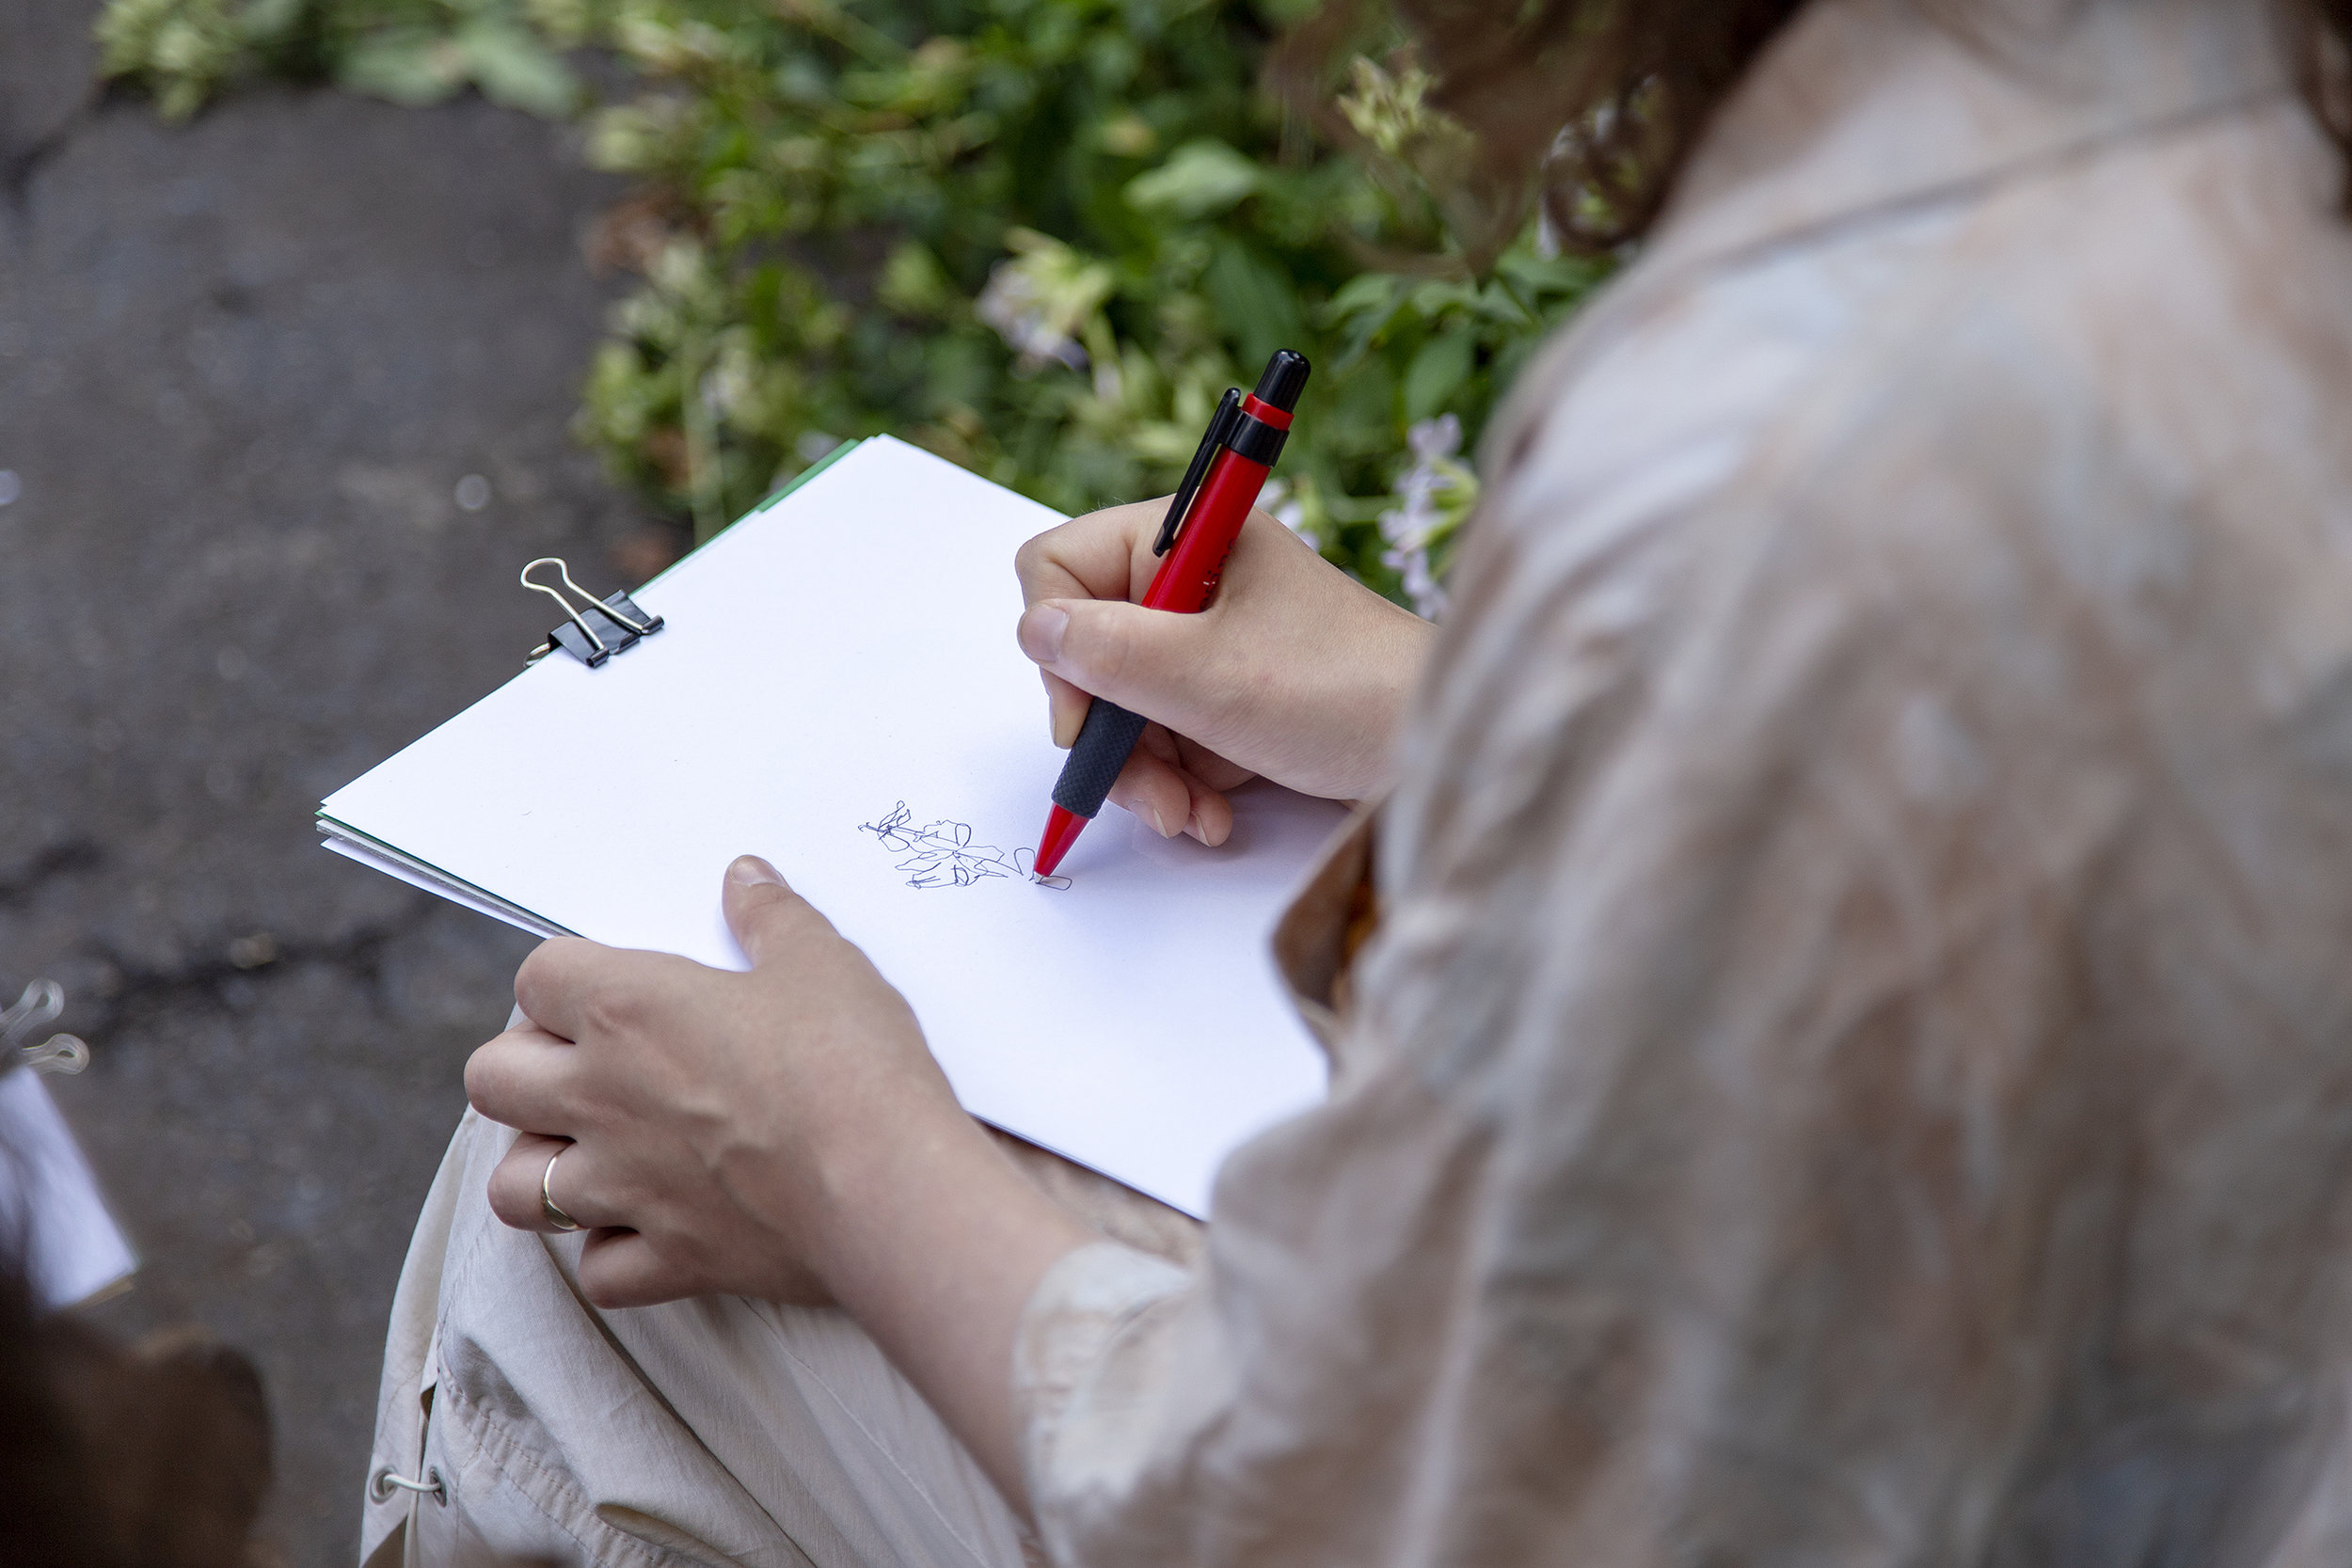 Deep observation through drawing. Photography: Martina Della Valle